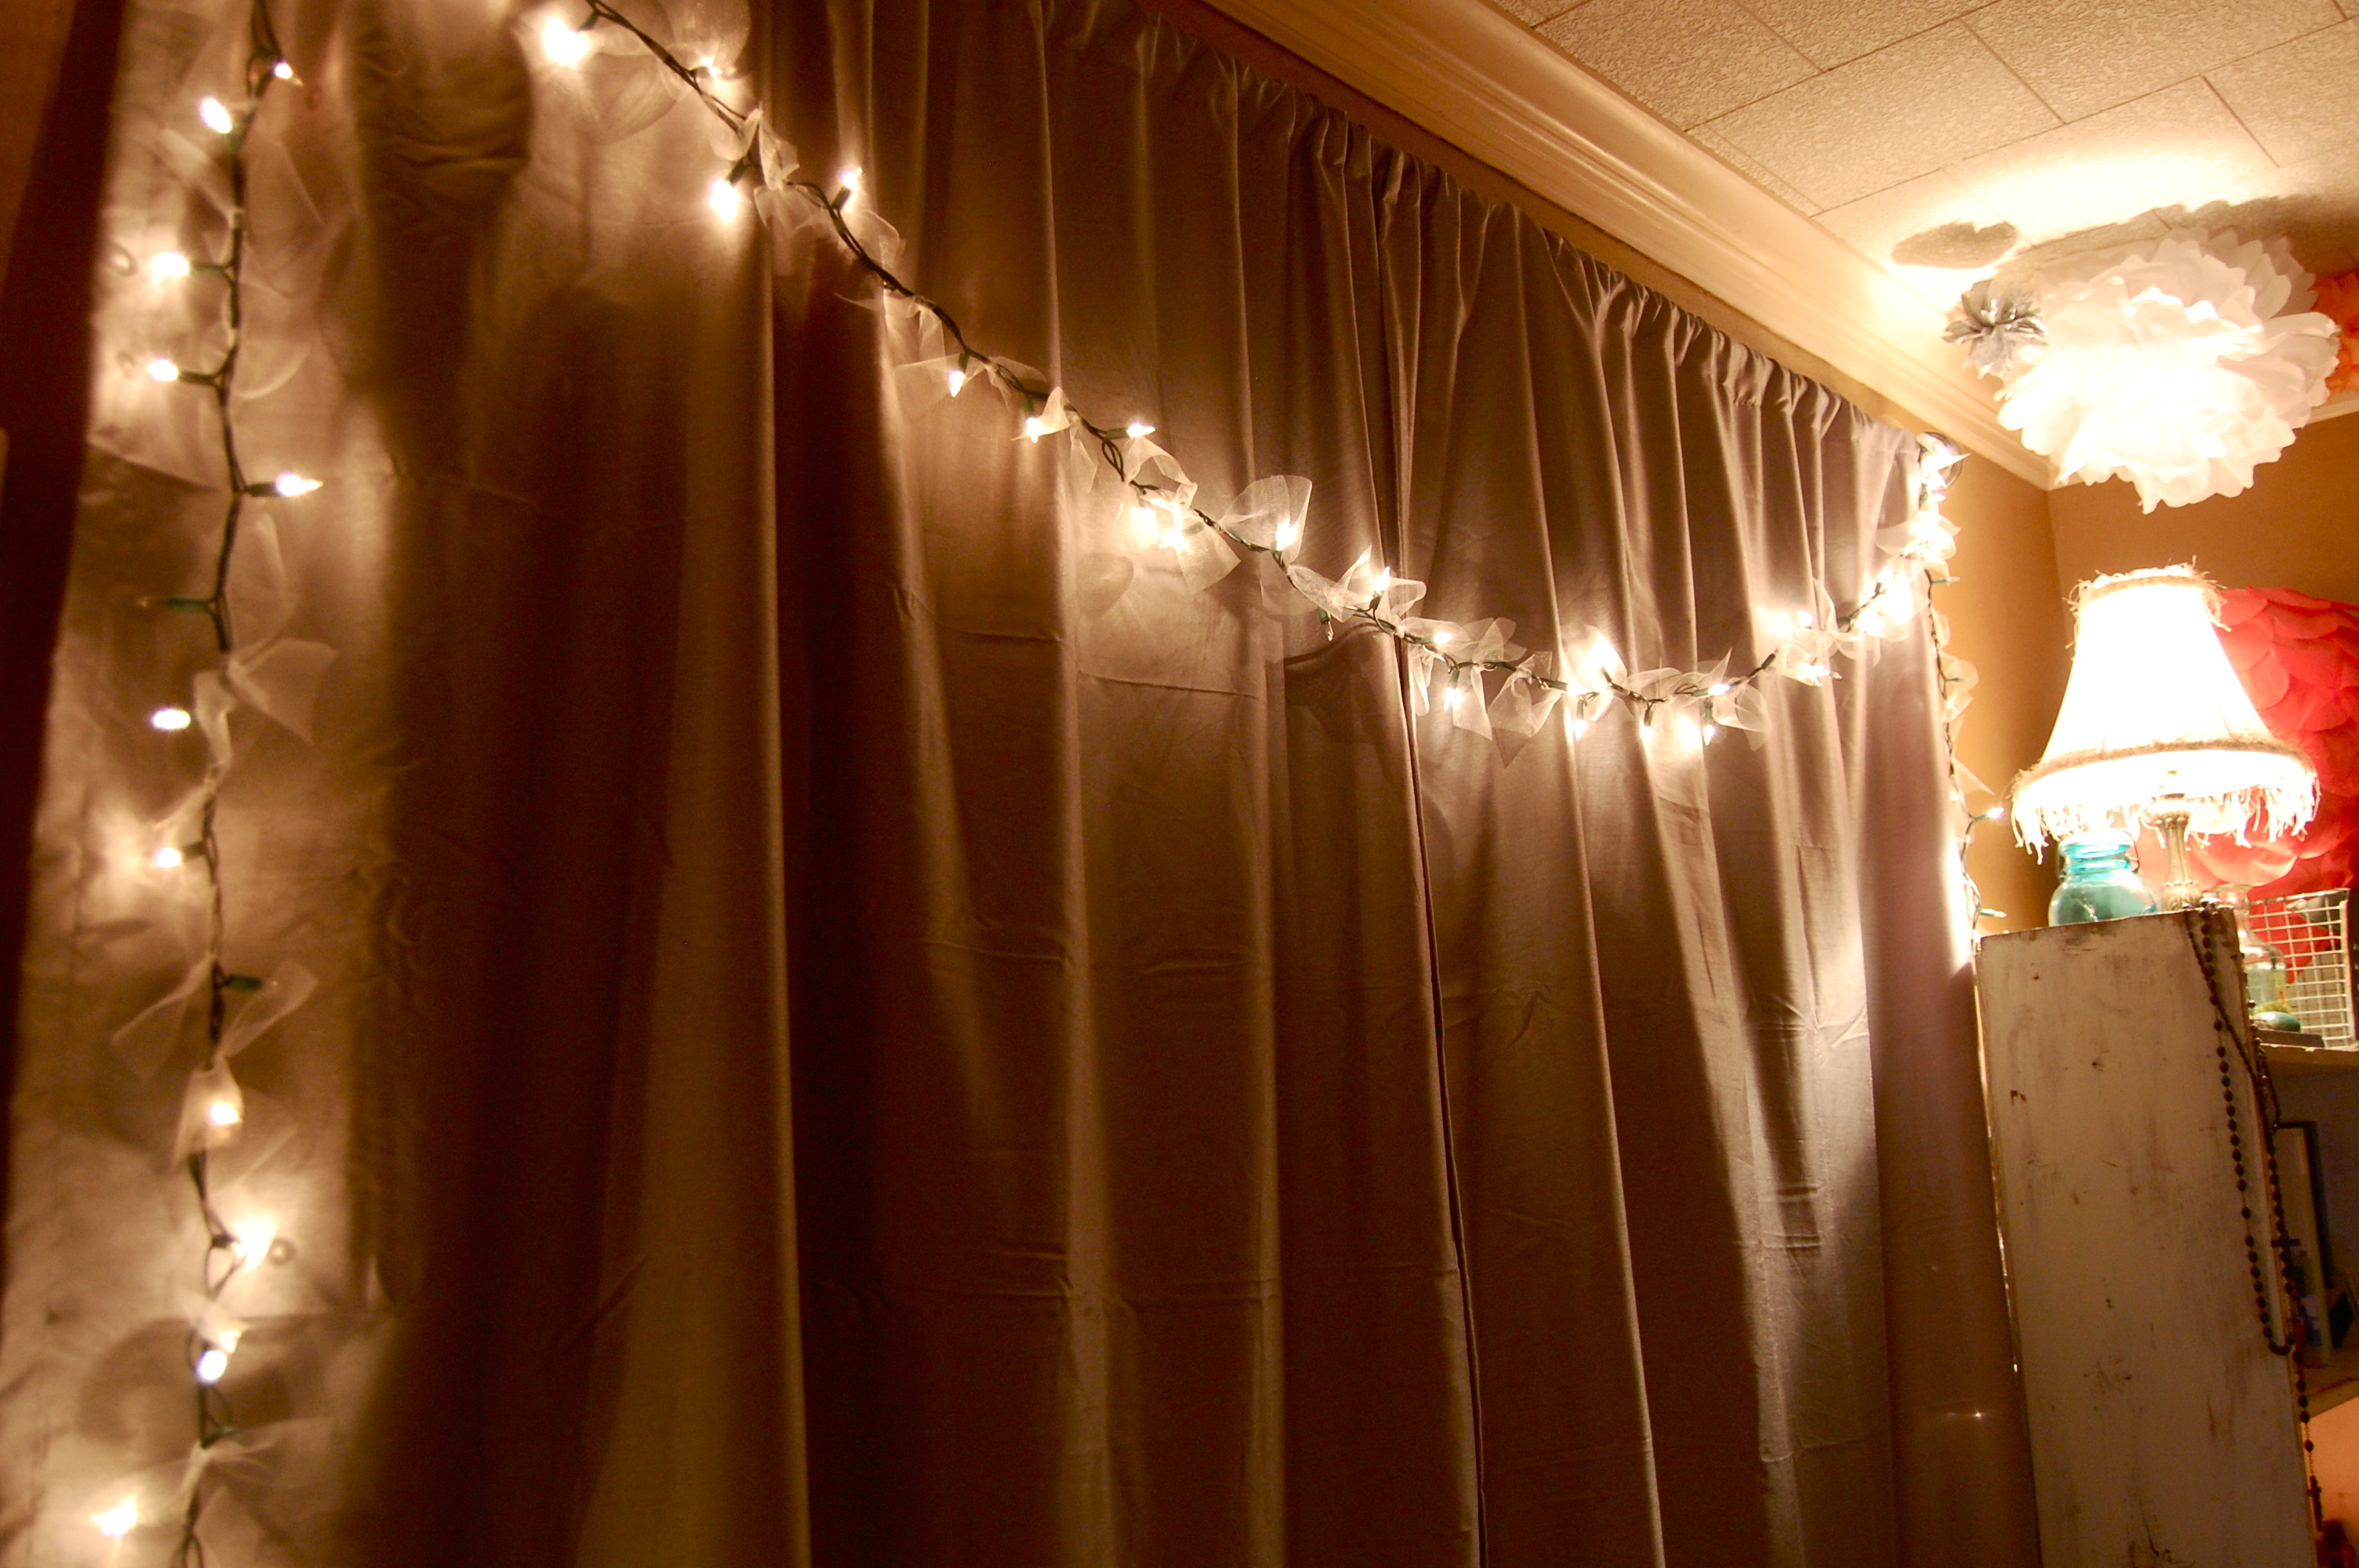 Tulle String Lights Diy : DIY: Tulle Lights - JADERBOMB